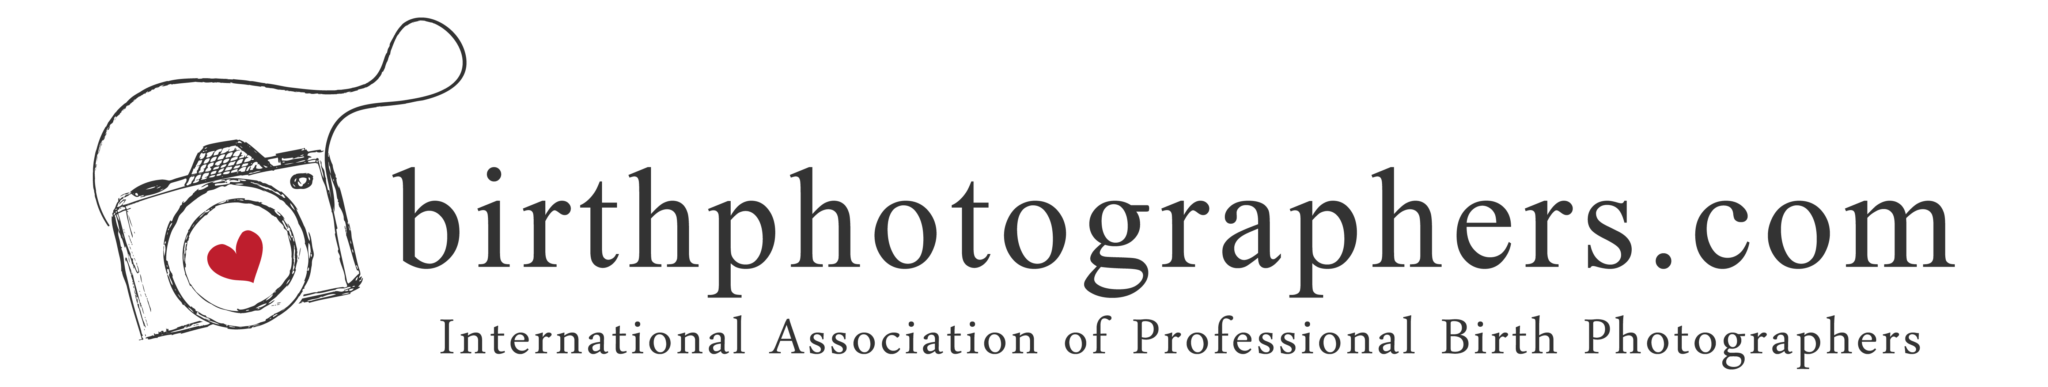 member of the international association of birth photographers